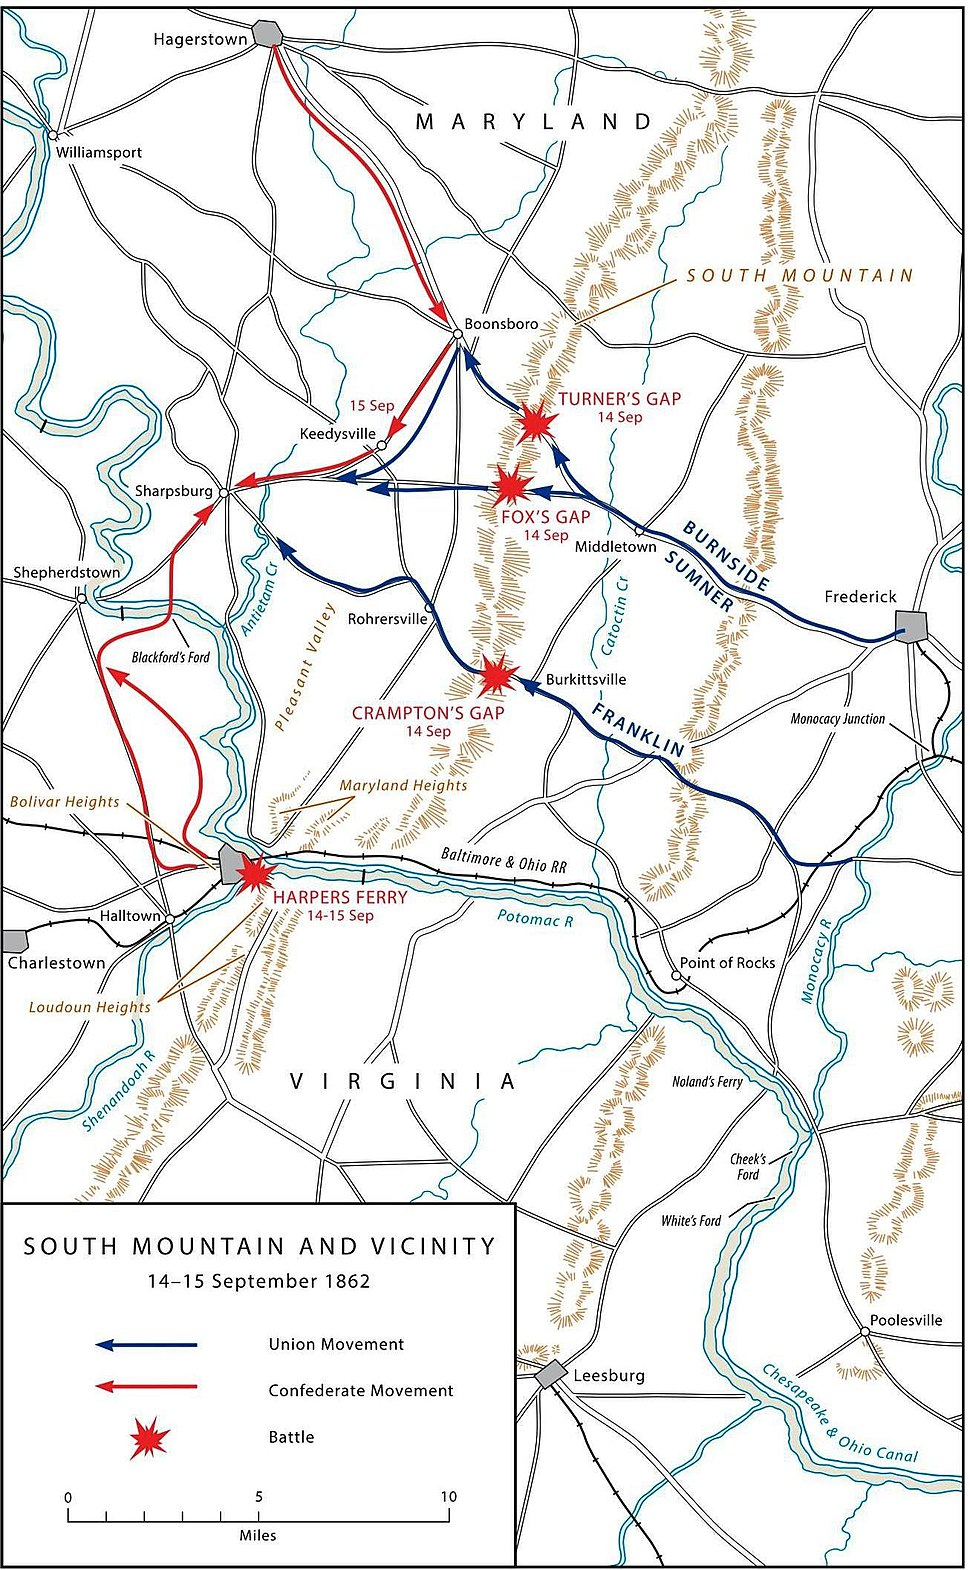 US ARMY MARYLAND CAMPAIGN MAP 2